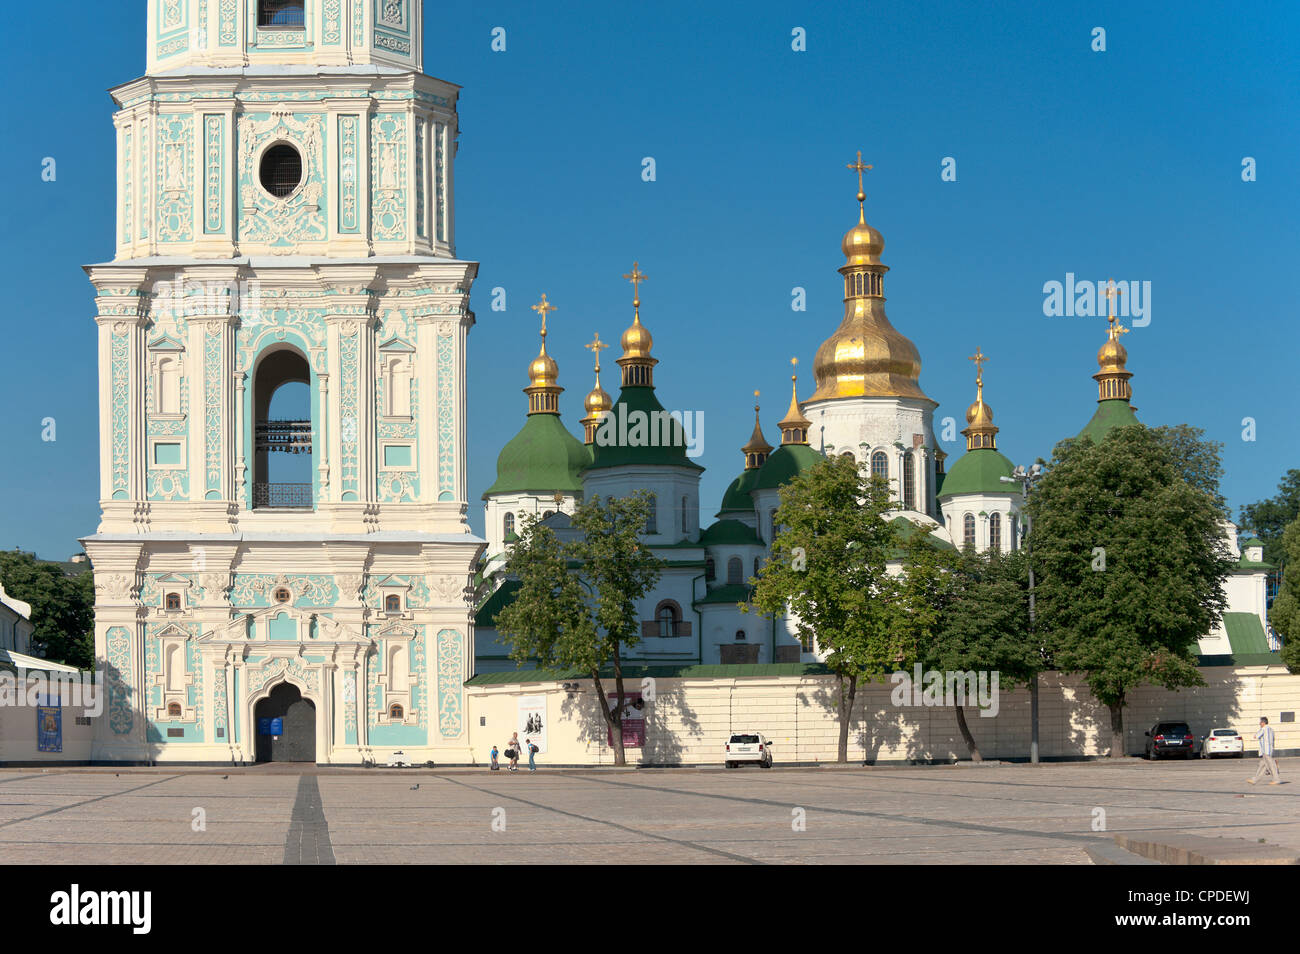 Sofia Square, Kiev, Ukraine, Europe - Stock Image